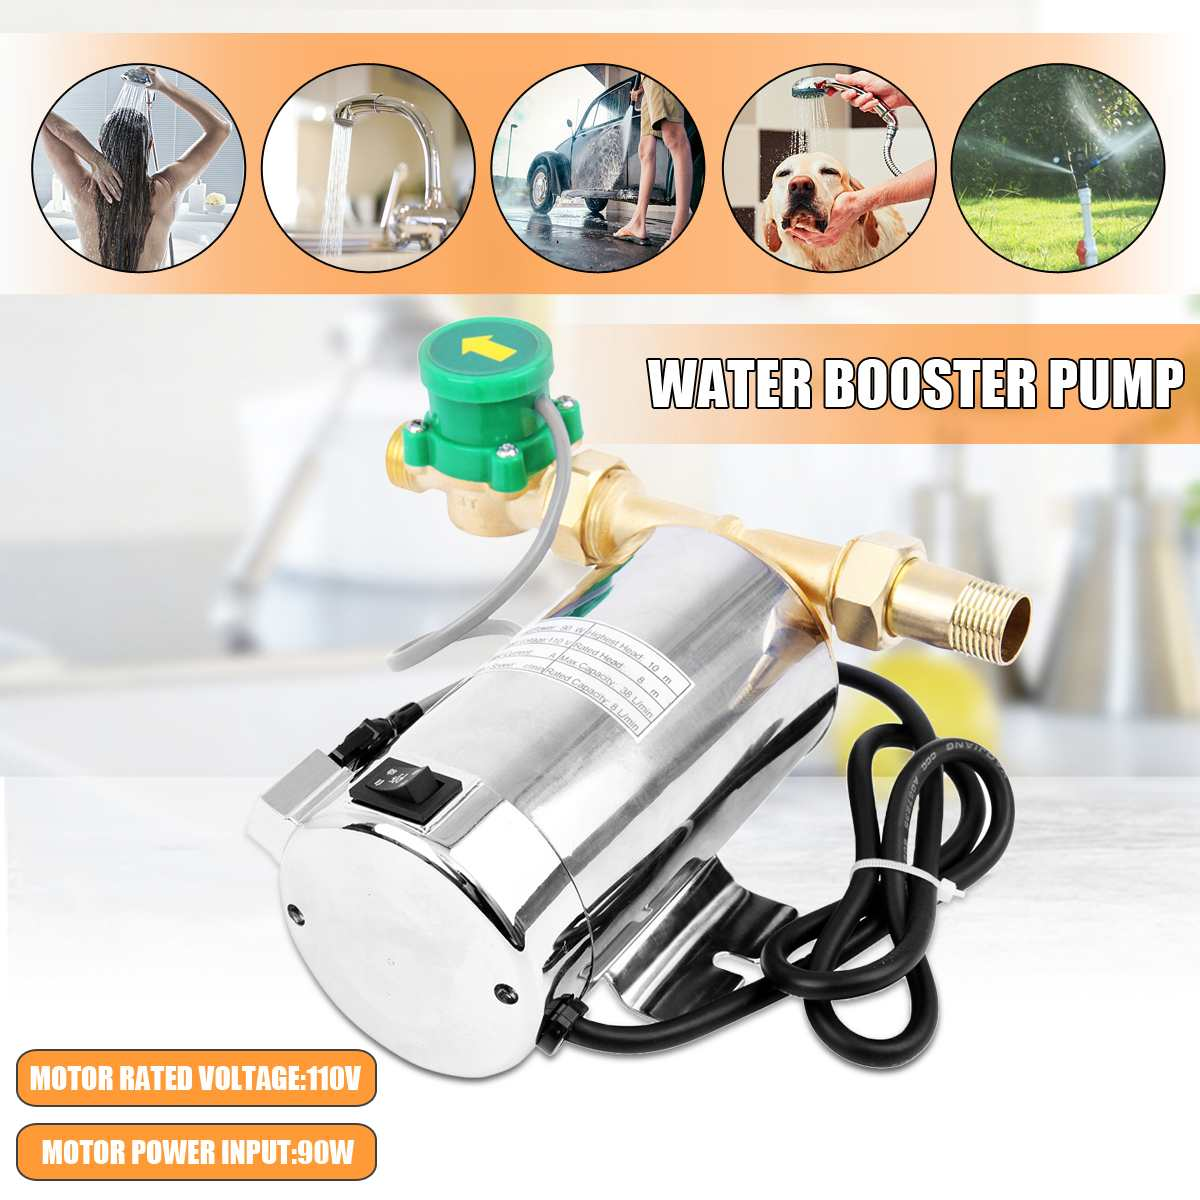 1Pcs Stainless Steel Automatic Home Shower Washing Machine Water Booster Pump 90W 110V 60Hz US Plug